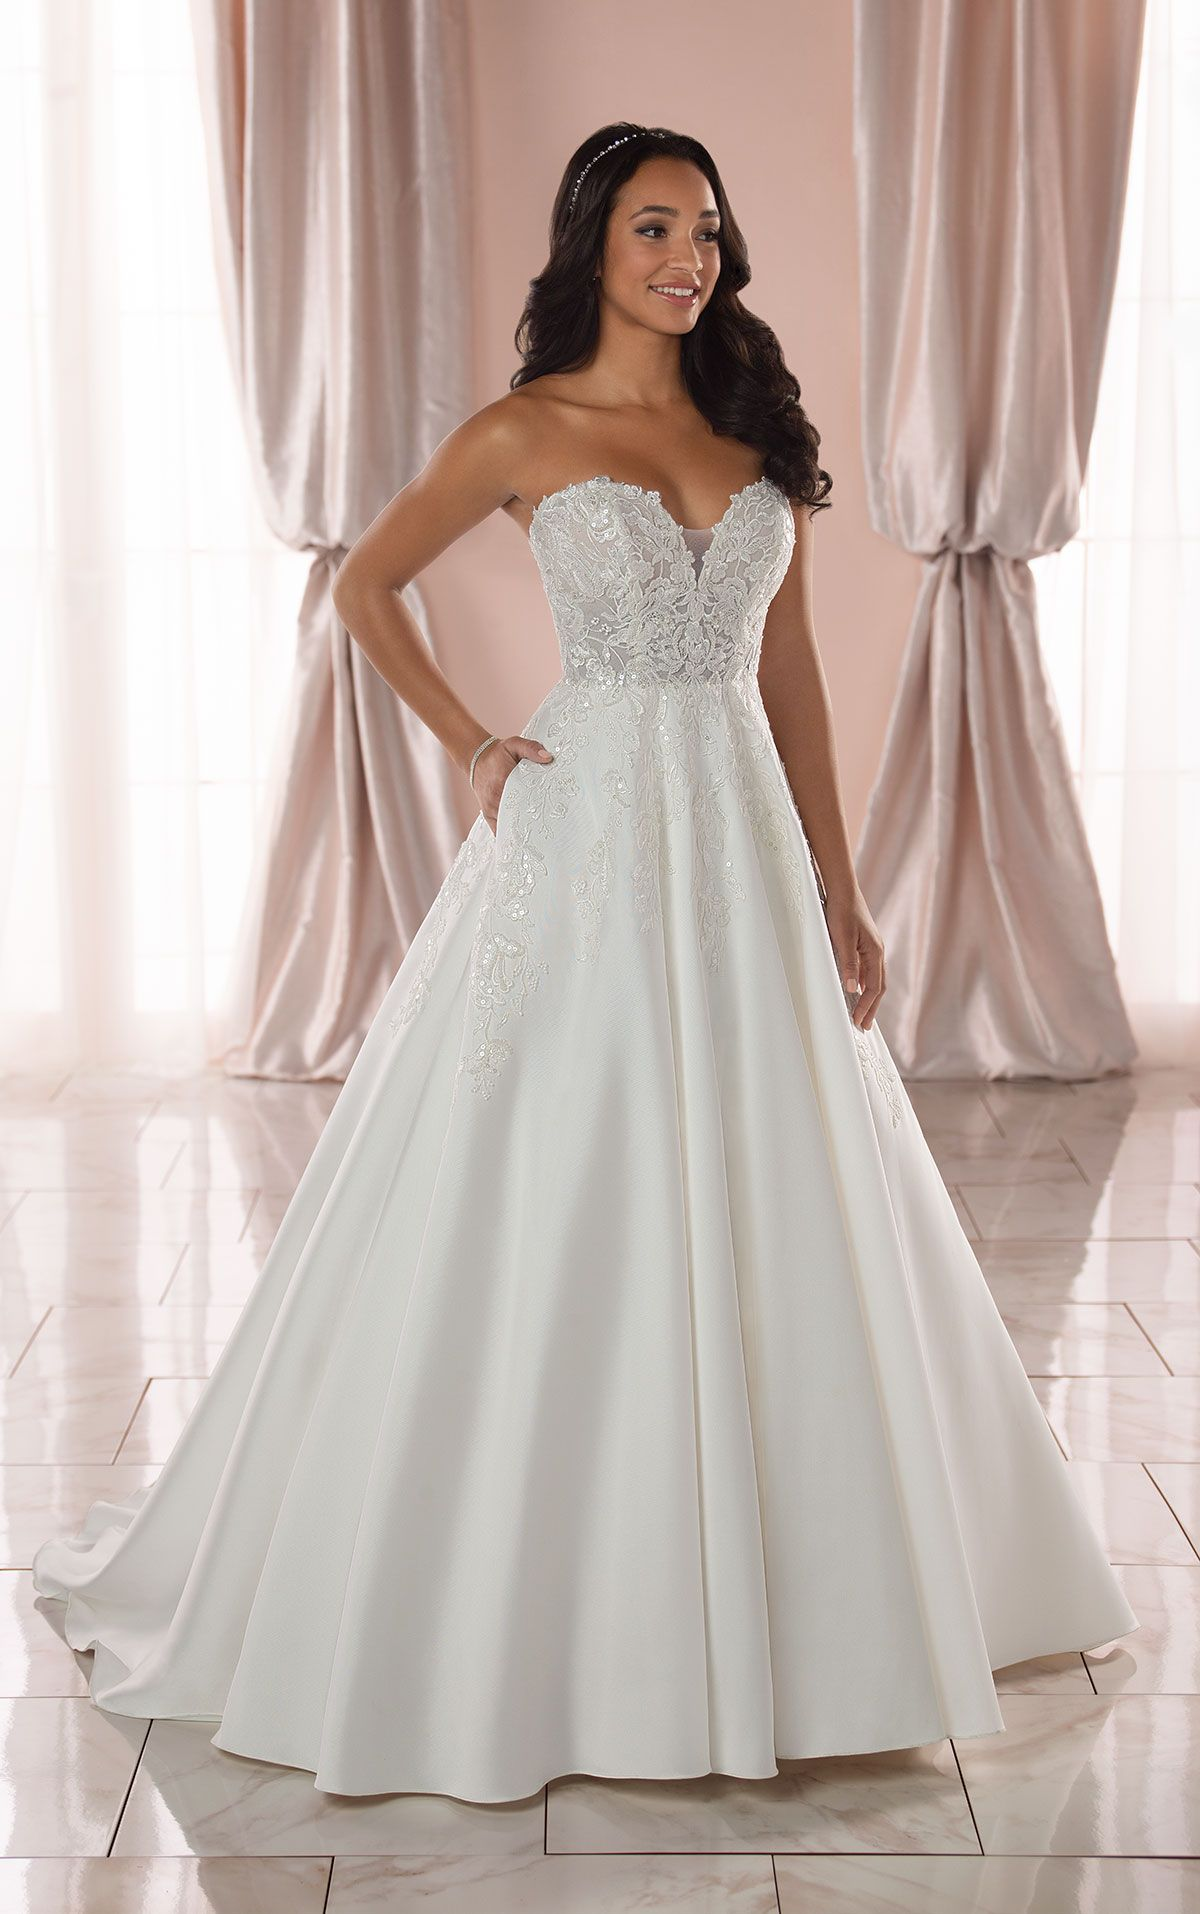 Strapless Structured Ballgown with Pockets Stella York